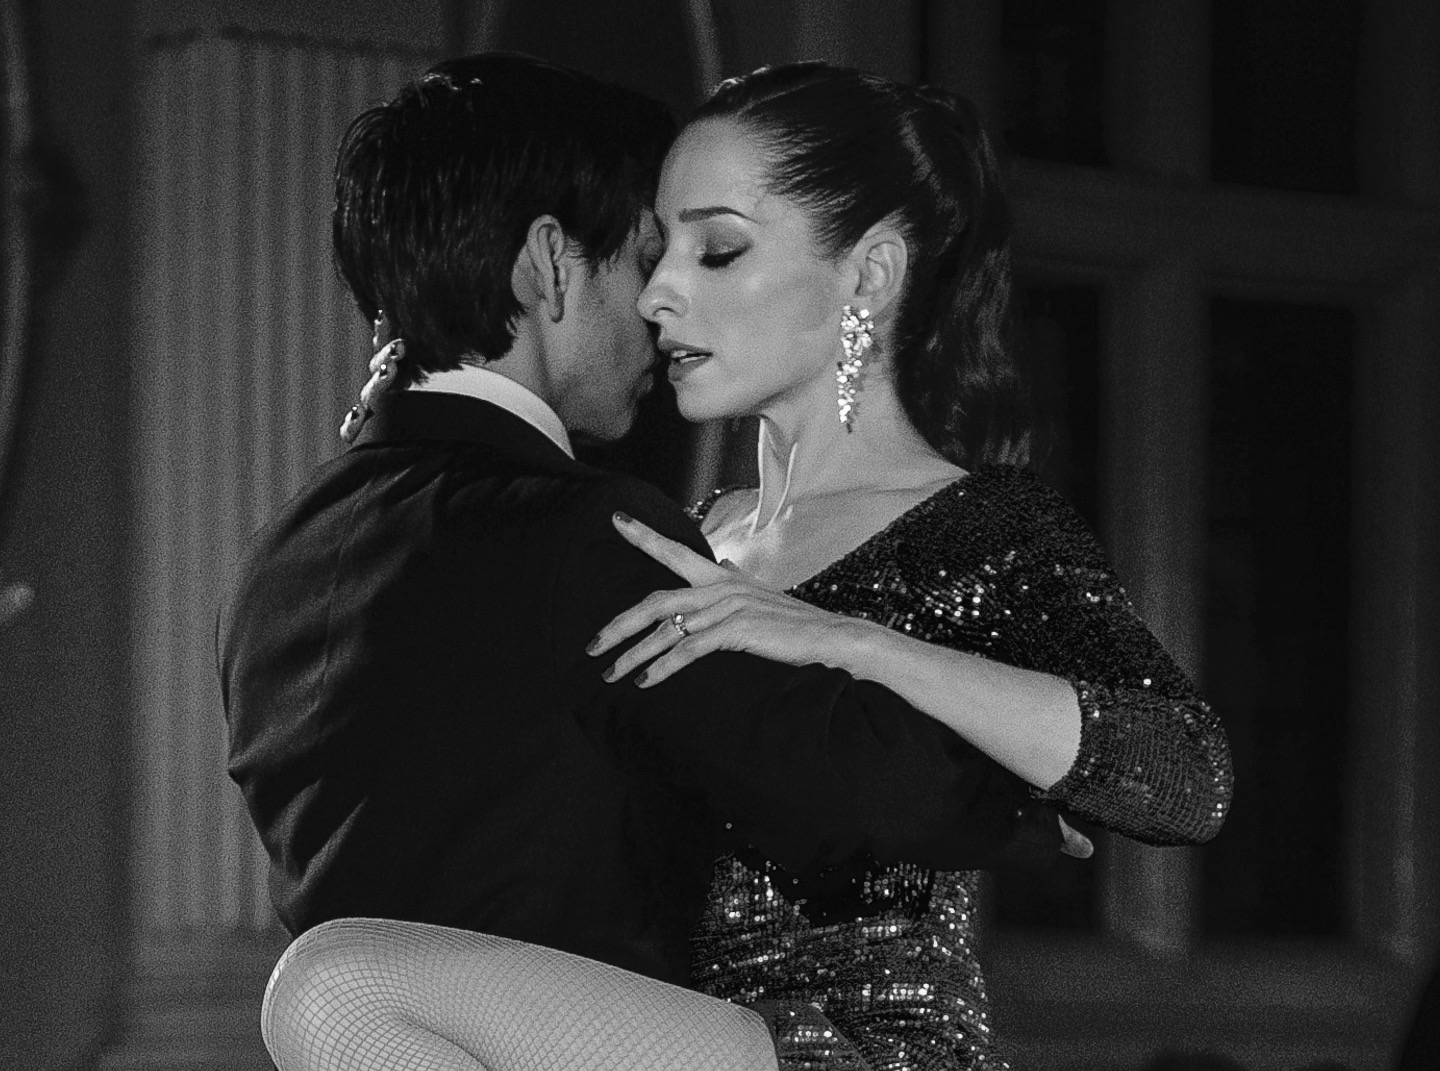 tango dancers in a pose at the end of a performance